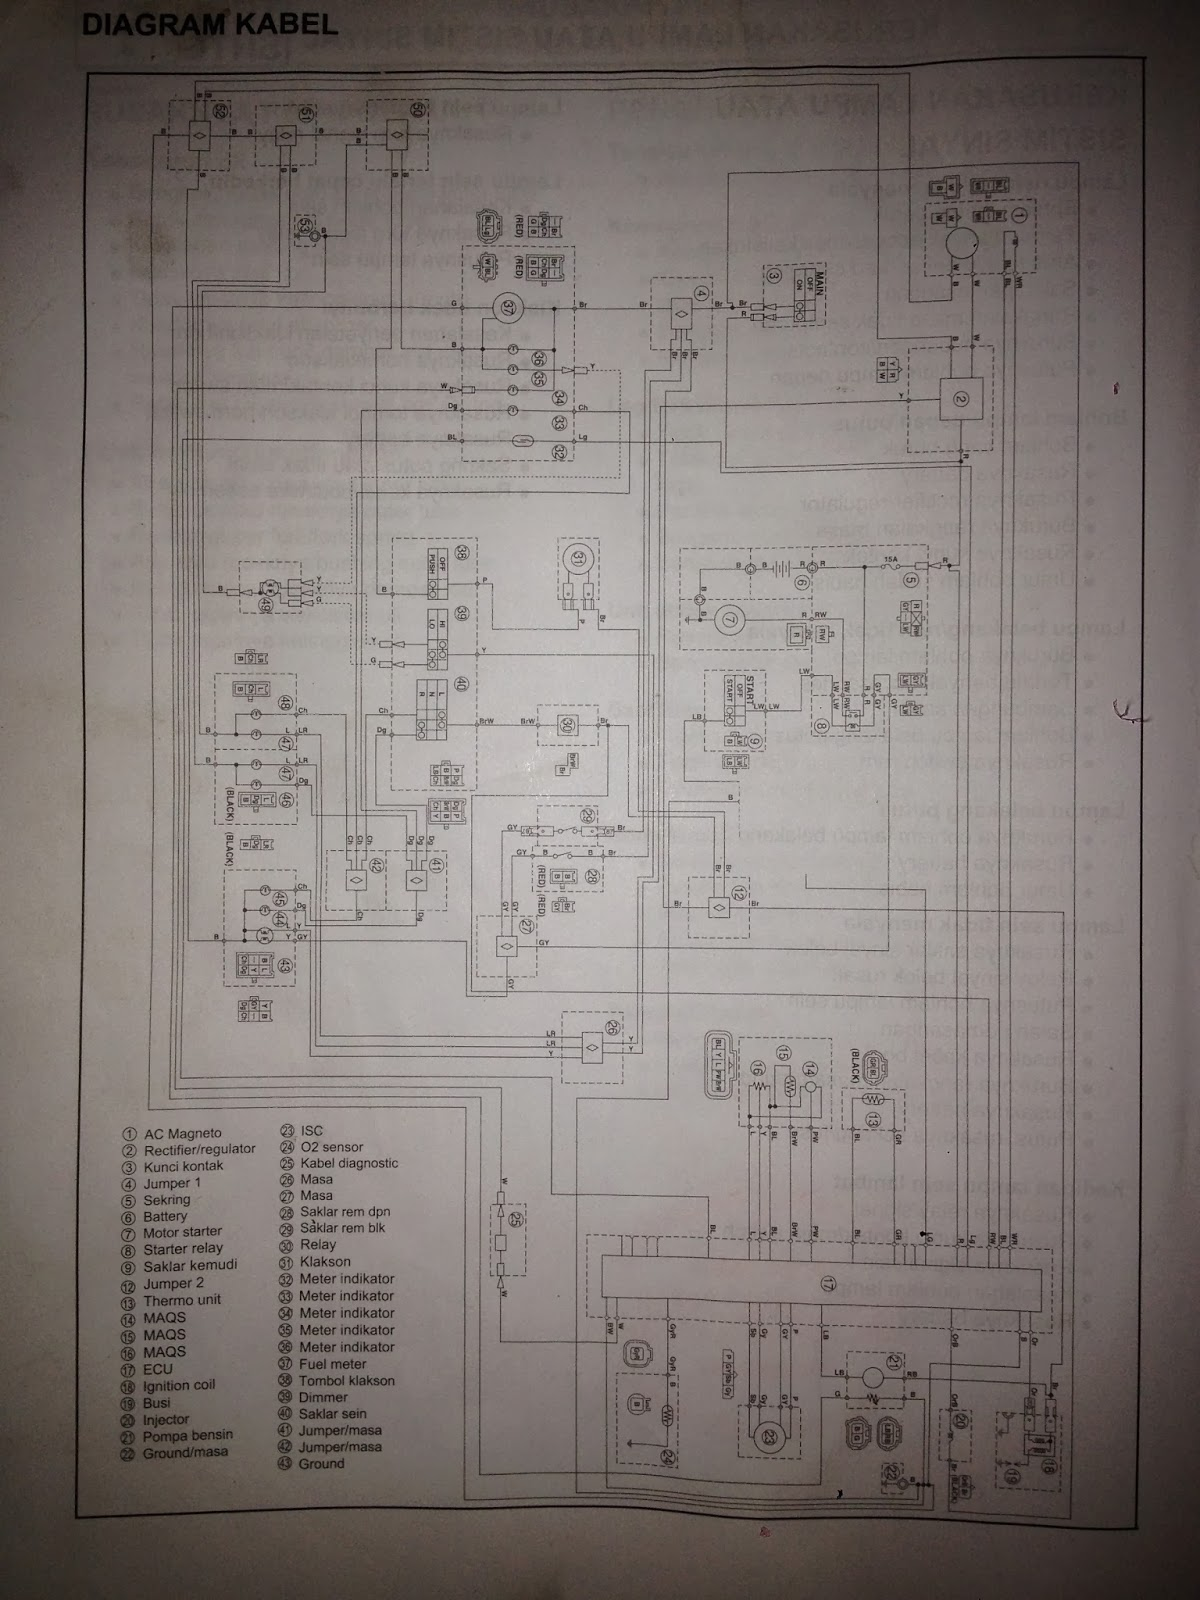 Wiring Diagram Of Mio Sporty : Diagram soket cdi mio search for wiring diagrams